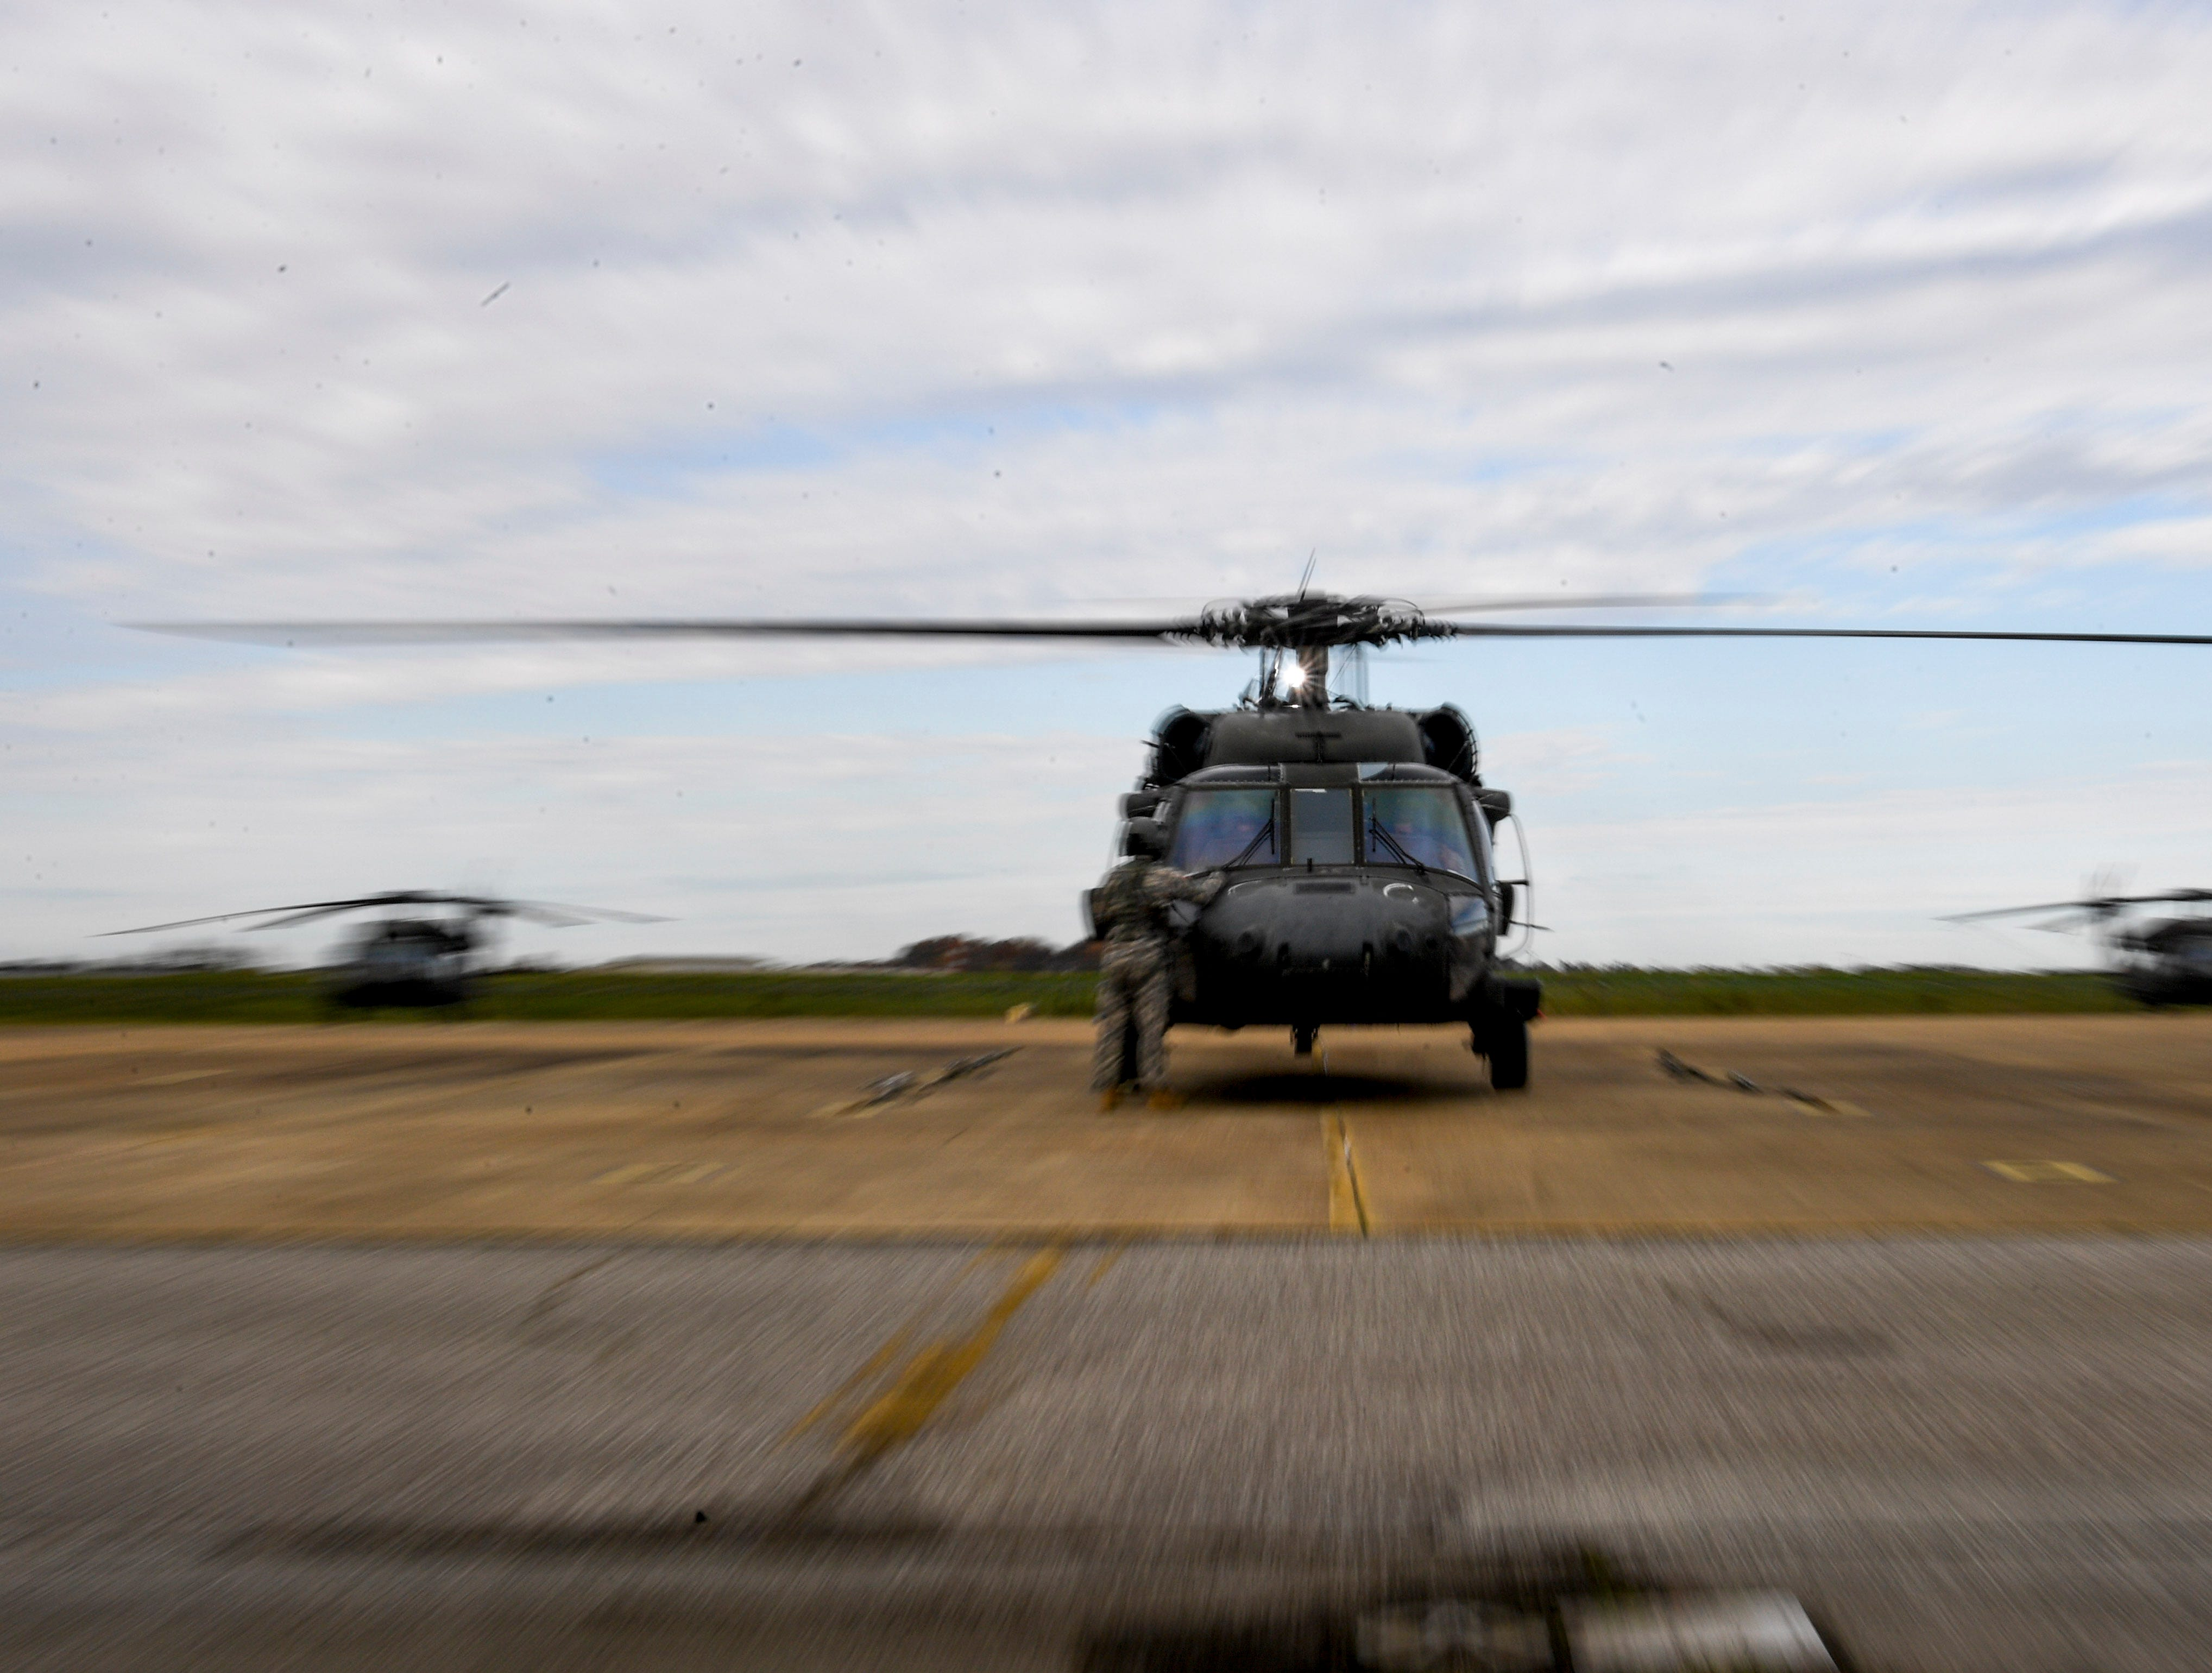 National Guardsmen prepare their helicopters for a flight during the annual Bosslift event put on by Employer Support of the Guard and Reserve (ESGR) and the Tennessee National Guard at Army Aviation Facility in Jackson, Tenn., on Thursday, Nov. 8, 2018.